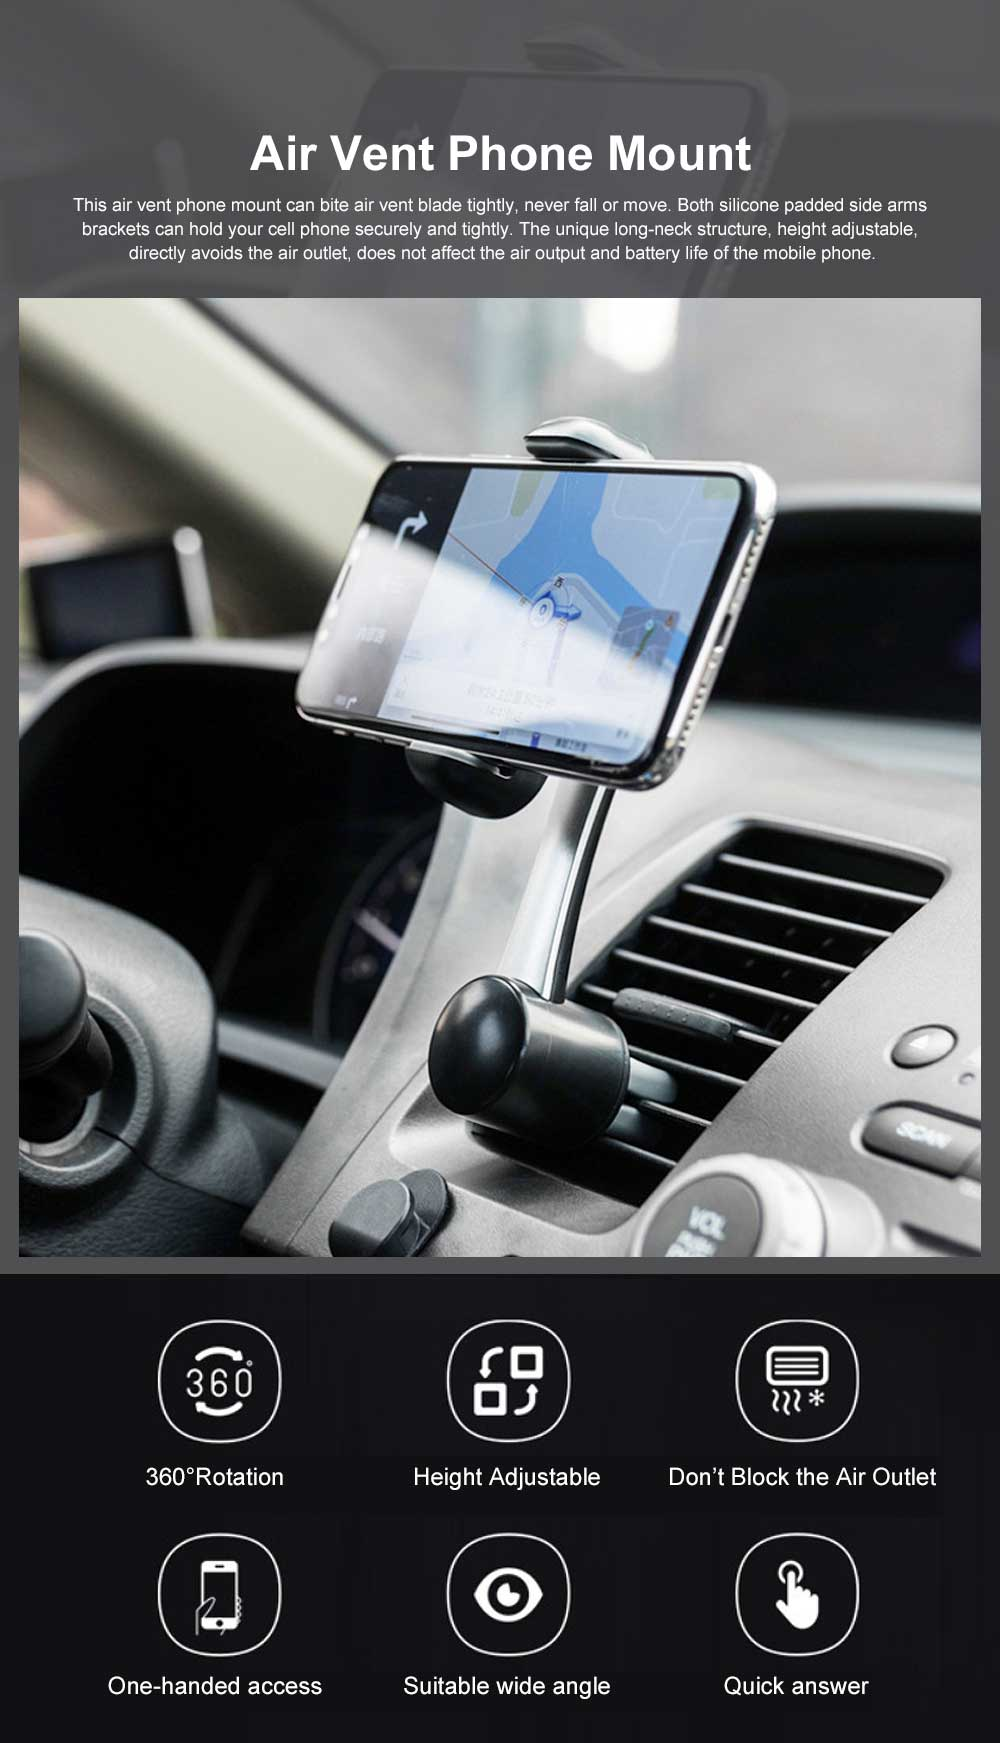 Air Vent Car Phone Mount 360 Degree Rotation Height Adjustable Phone Holder Universal Air Outlet Bracket for Phone 4-6 Inch 0